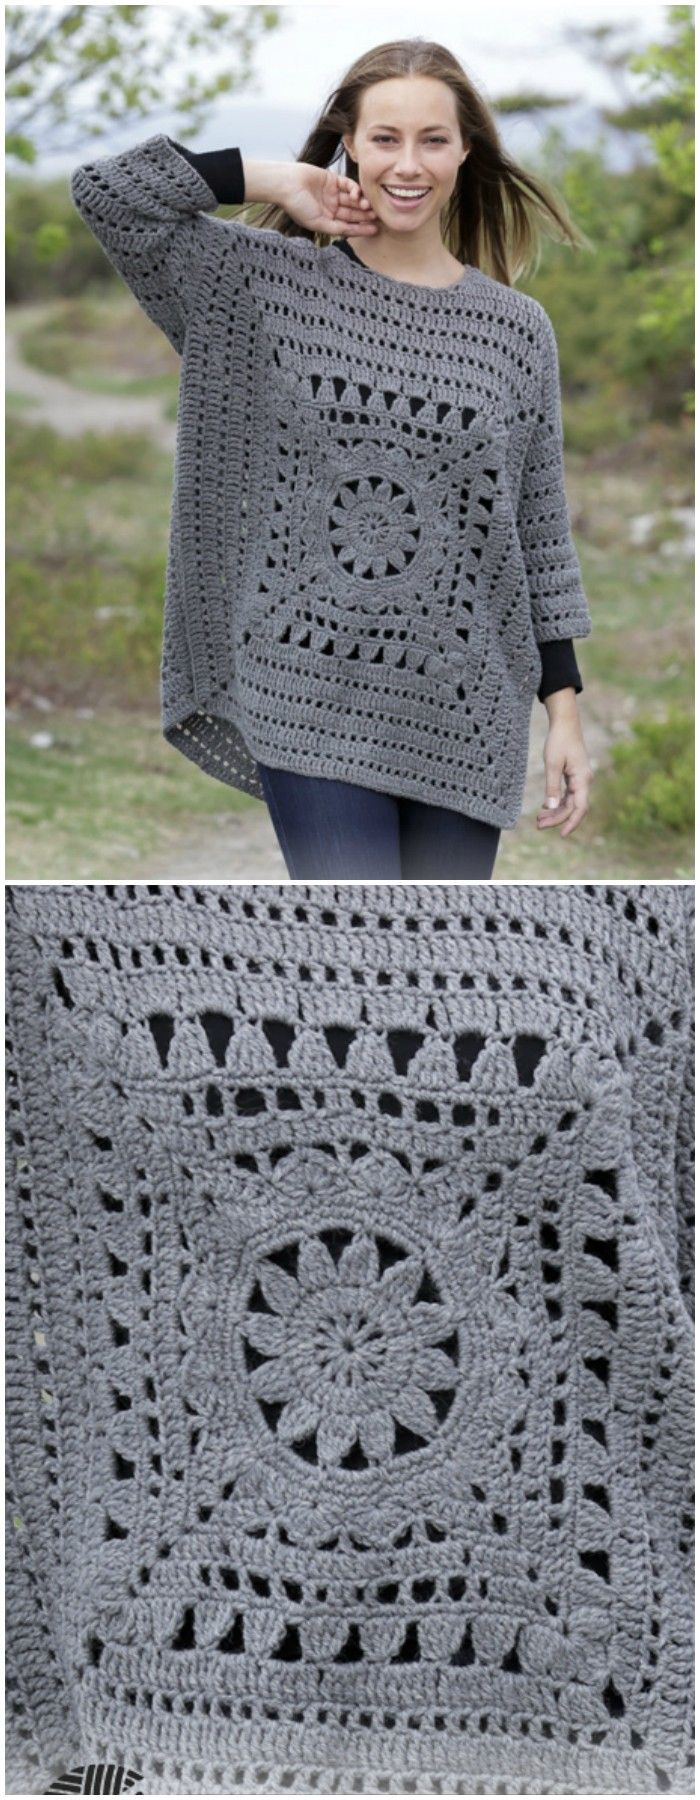 Free Crochet Sweater Patterns – Free Crochet Patterns – DIY Crafts